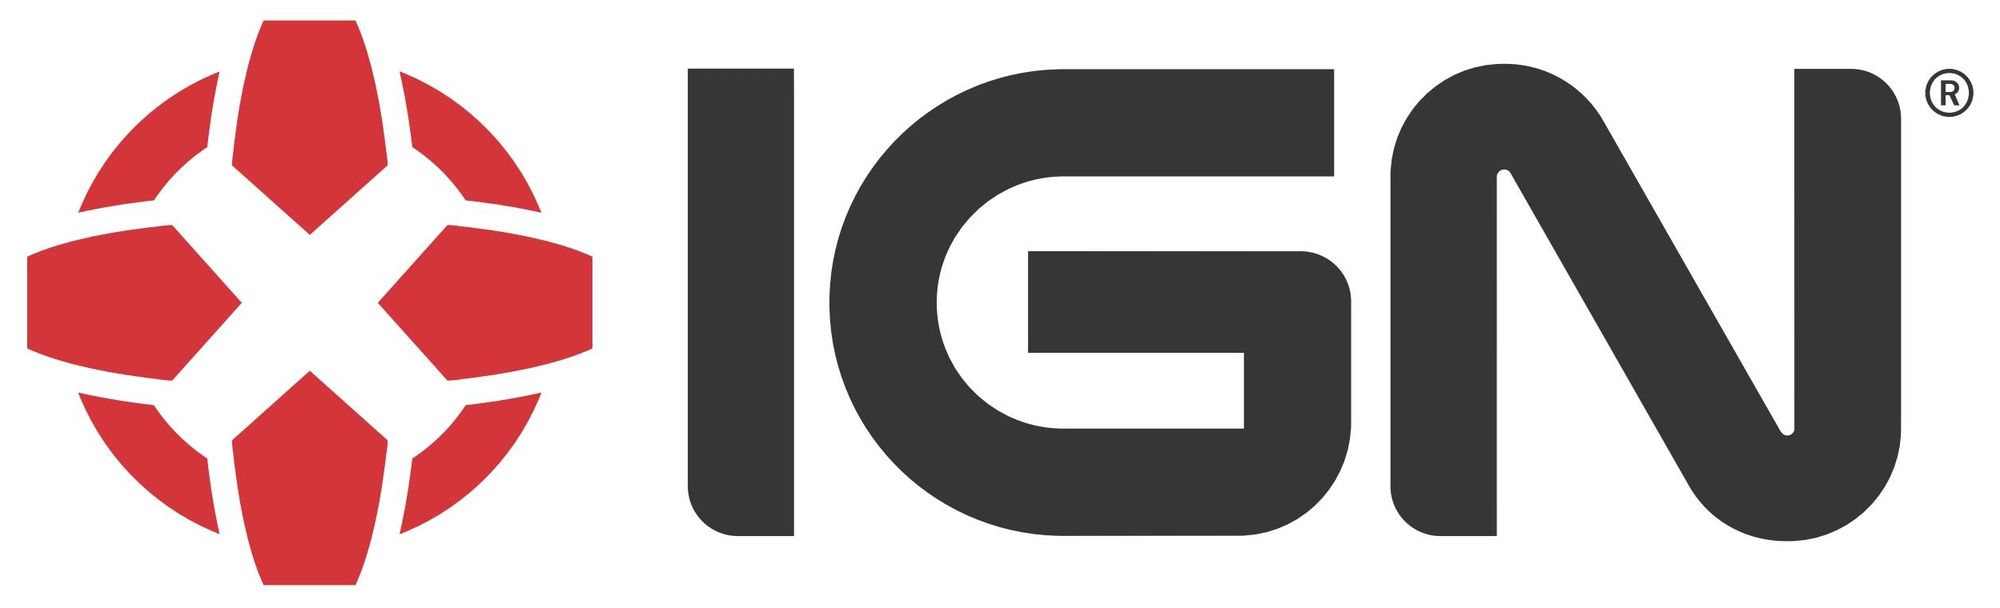 Imagine Games Network (IGN)